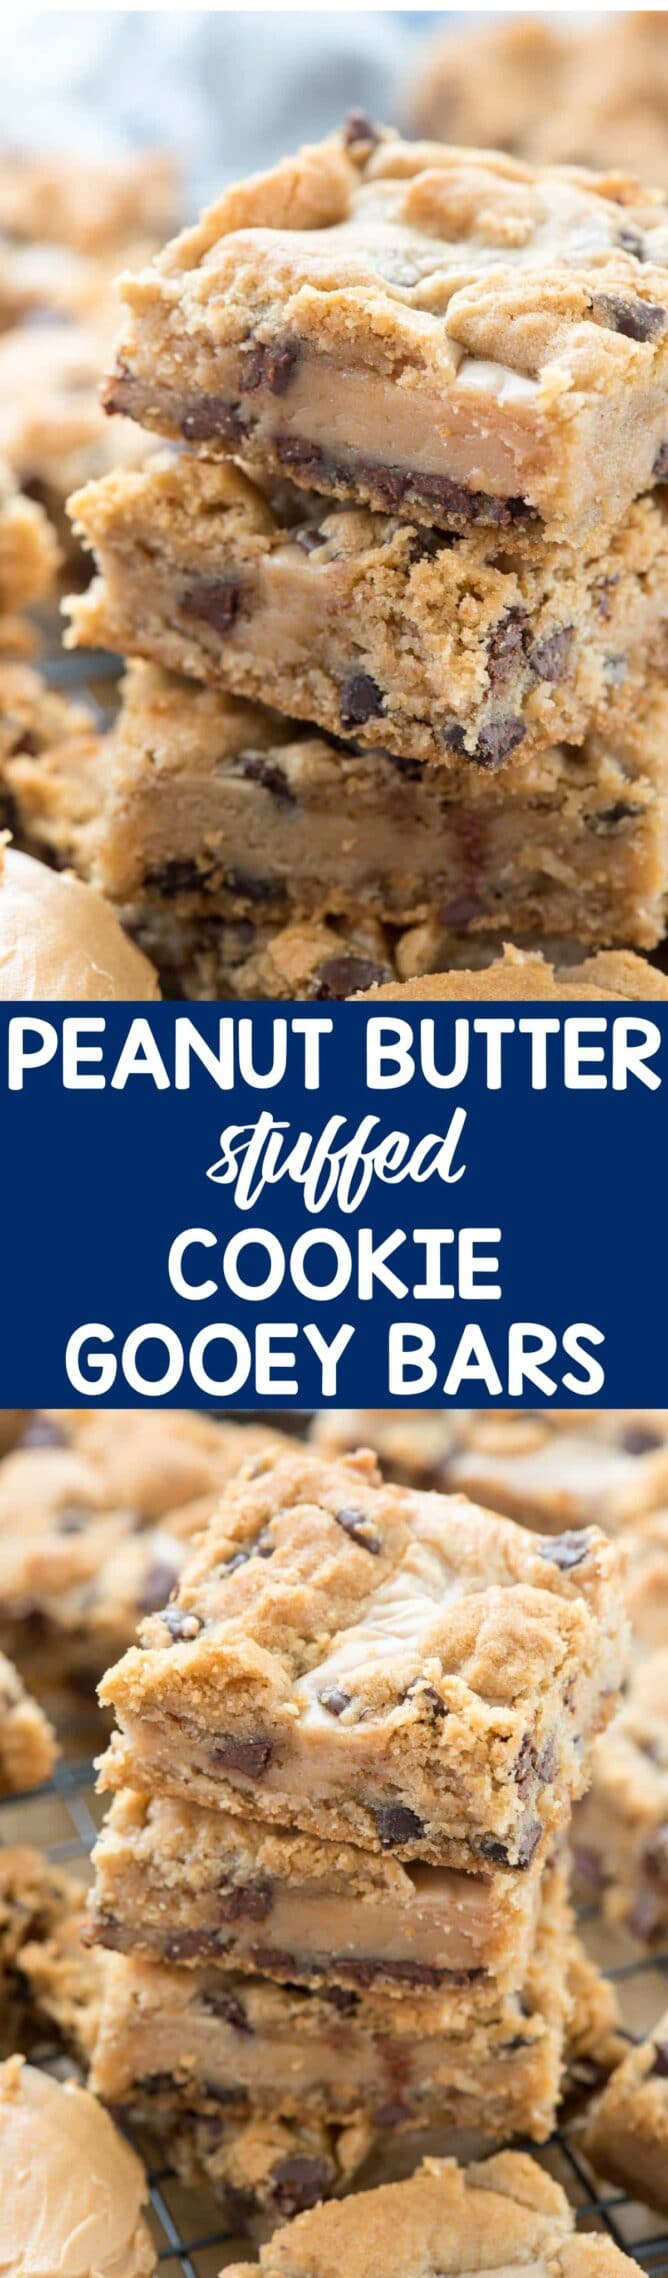 collage of Gooey Peanut Butter Chocolate Chip Cookie Bars photos